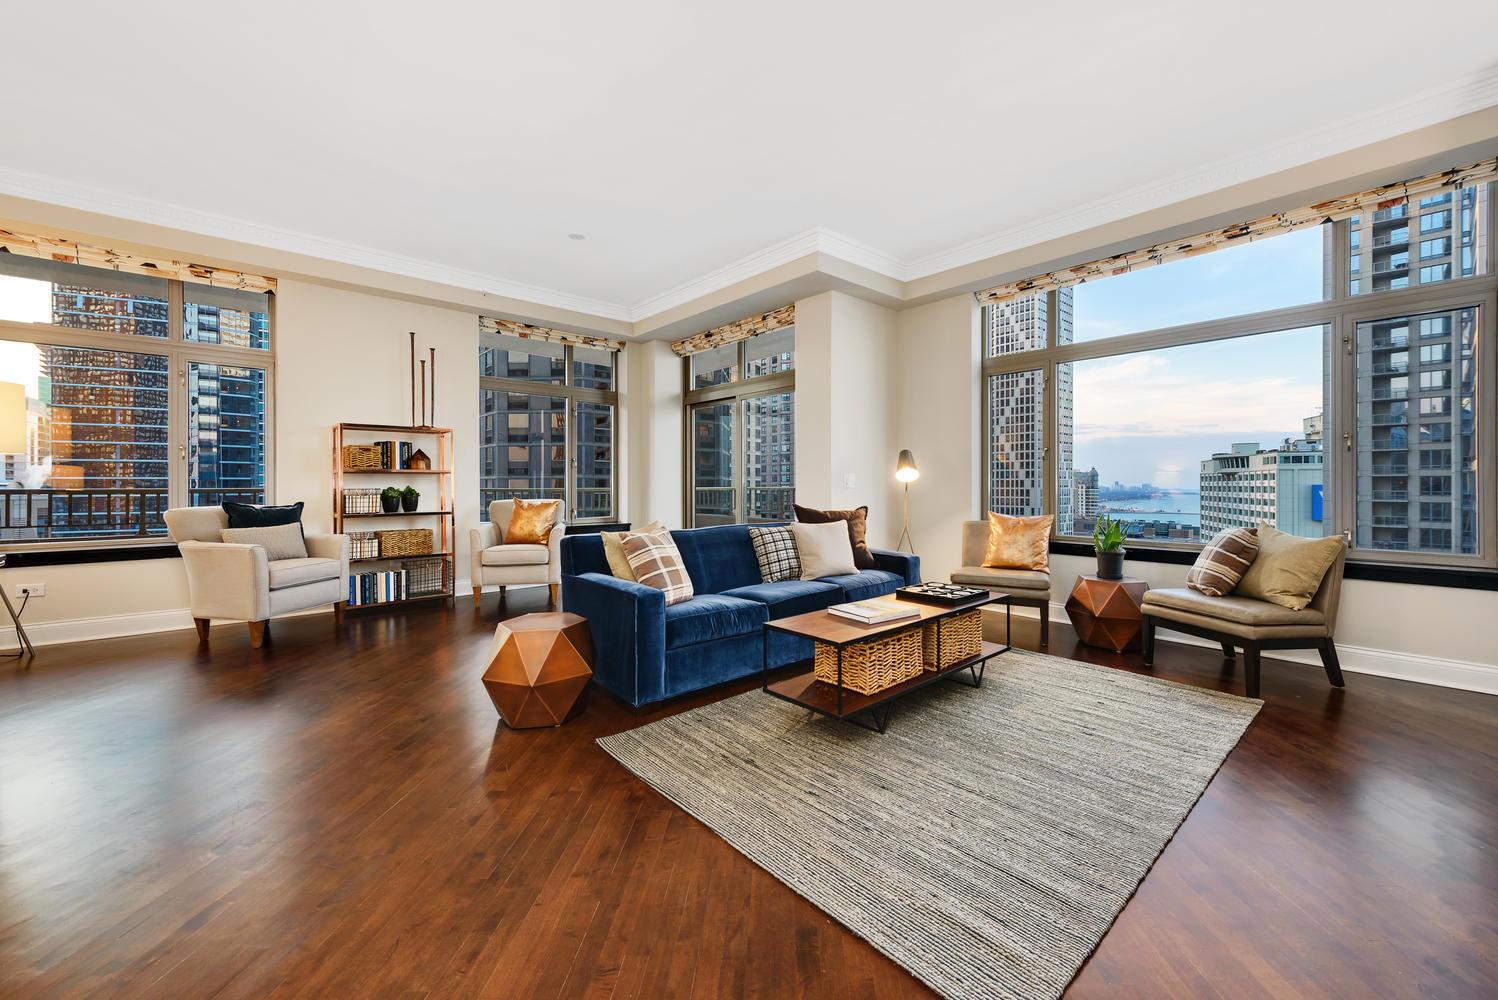 Chicago penthouse with two parking spots 22M  Chicago Tribune